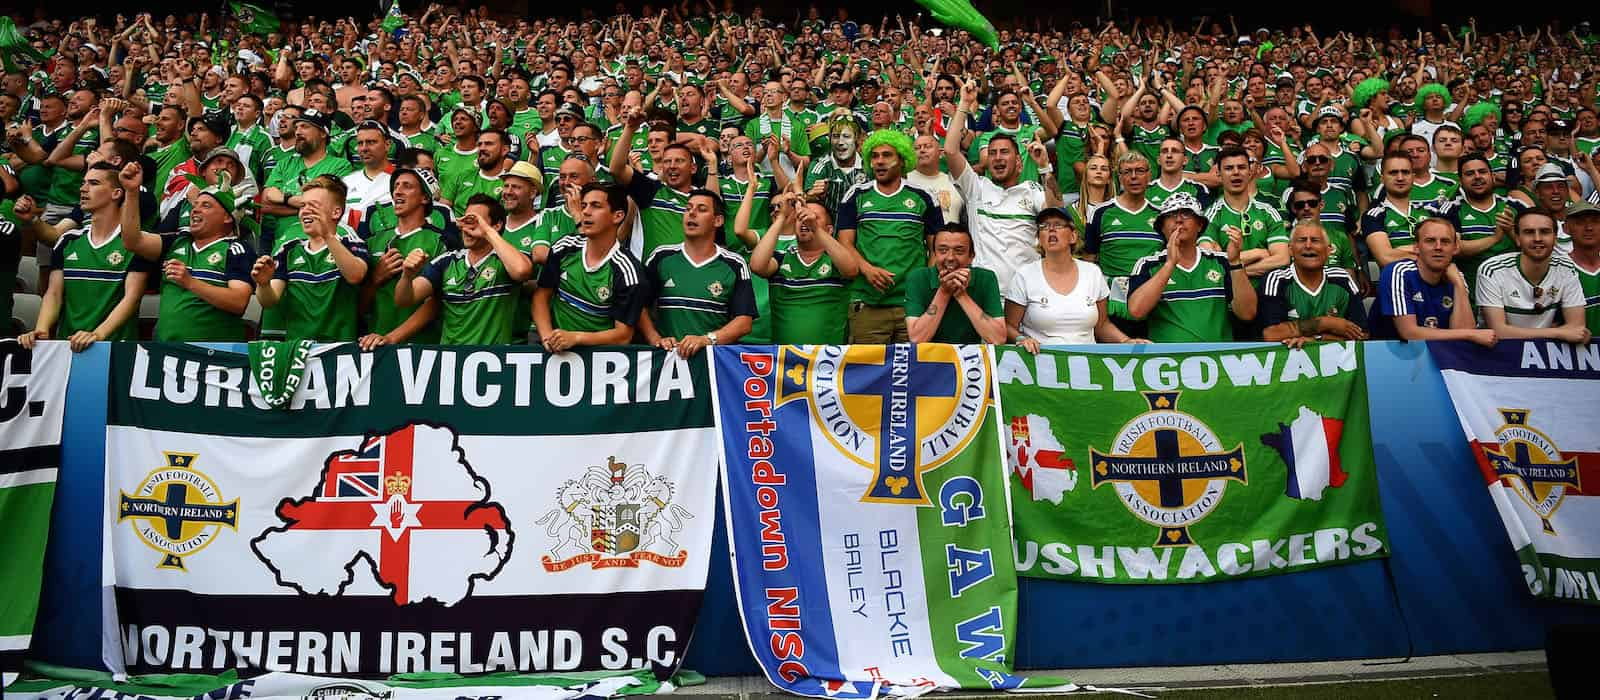 Video: Northern Ireland fans sing Spirit in the Sky chant at Euro 2016